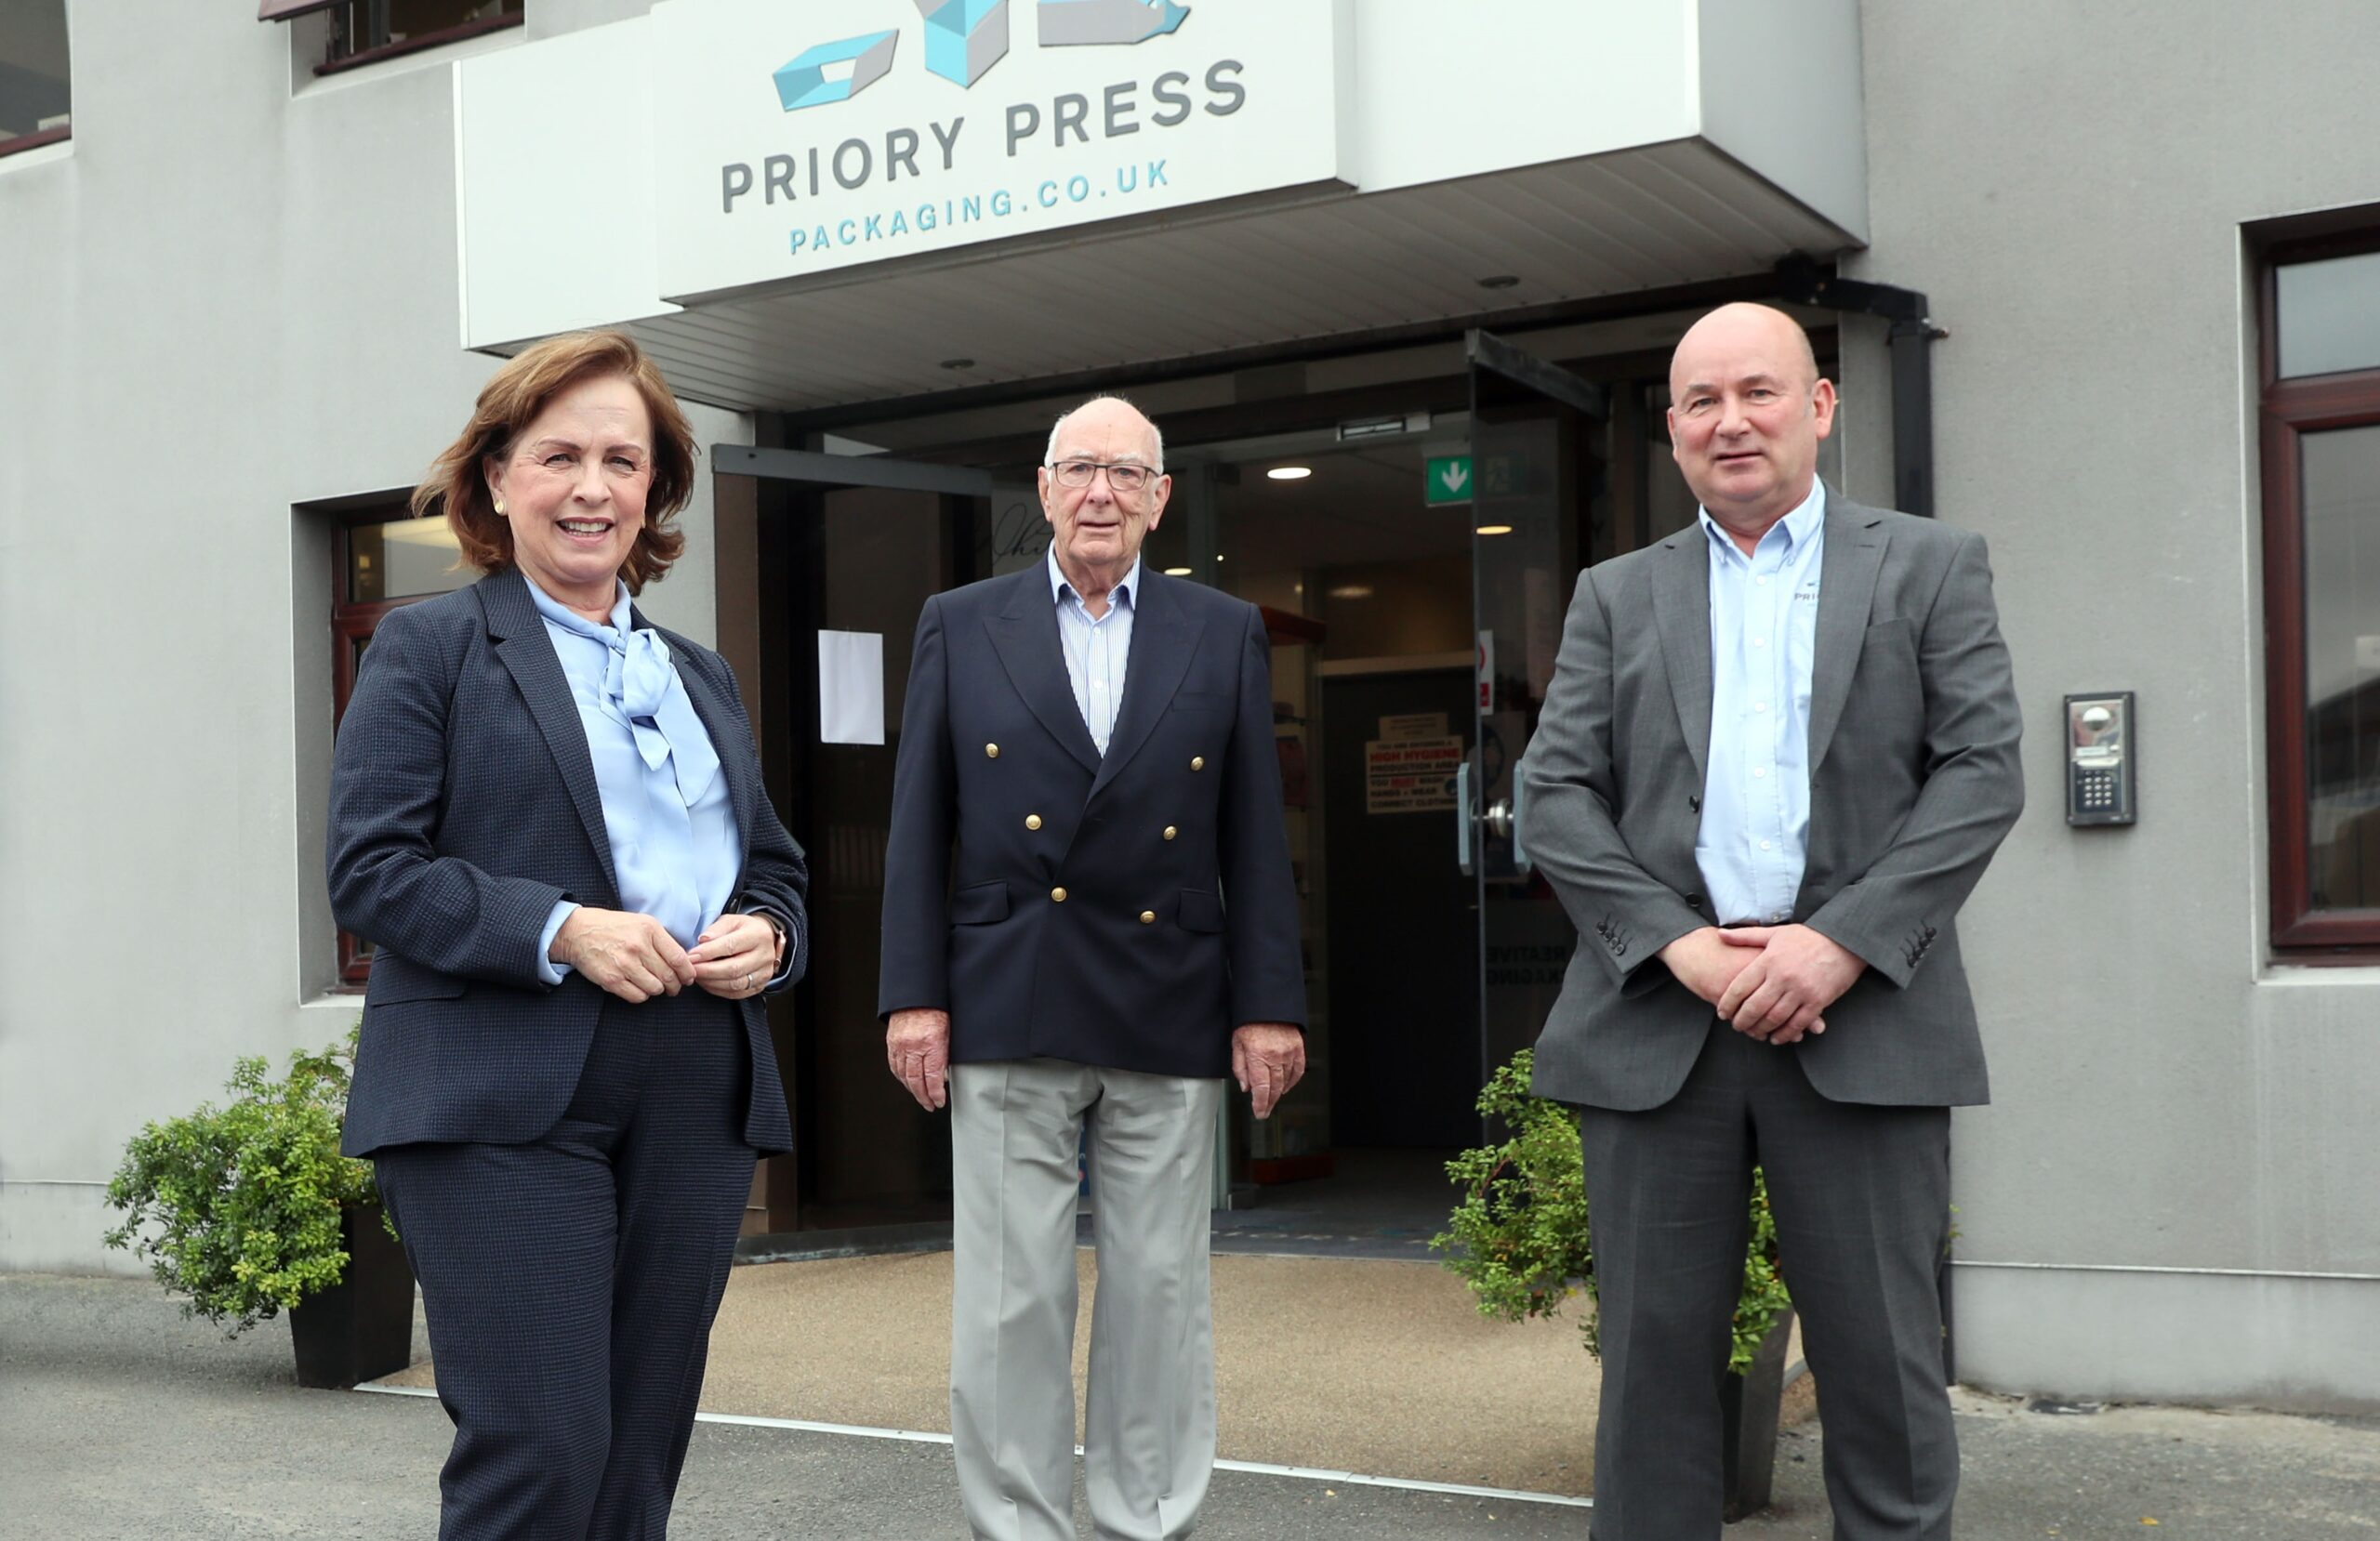 £1MILLION INVESTMENT BY COUNTY DOWN MANUFACTURER PRIORY PRESS PACKAGING - Northern Ireland business news - Freelance NI Copywriter